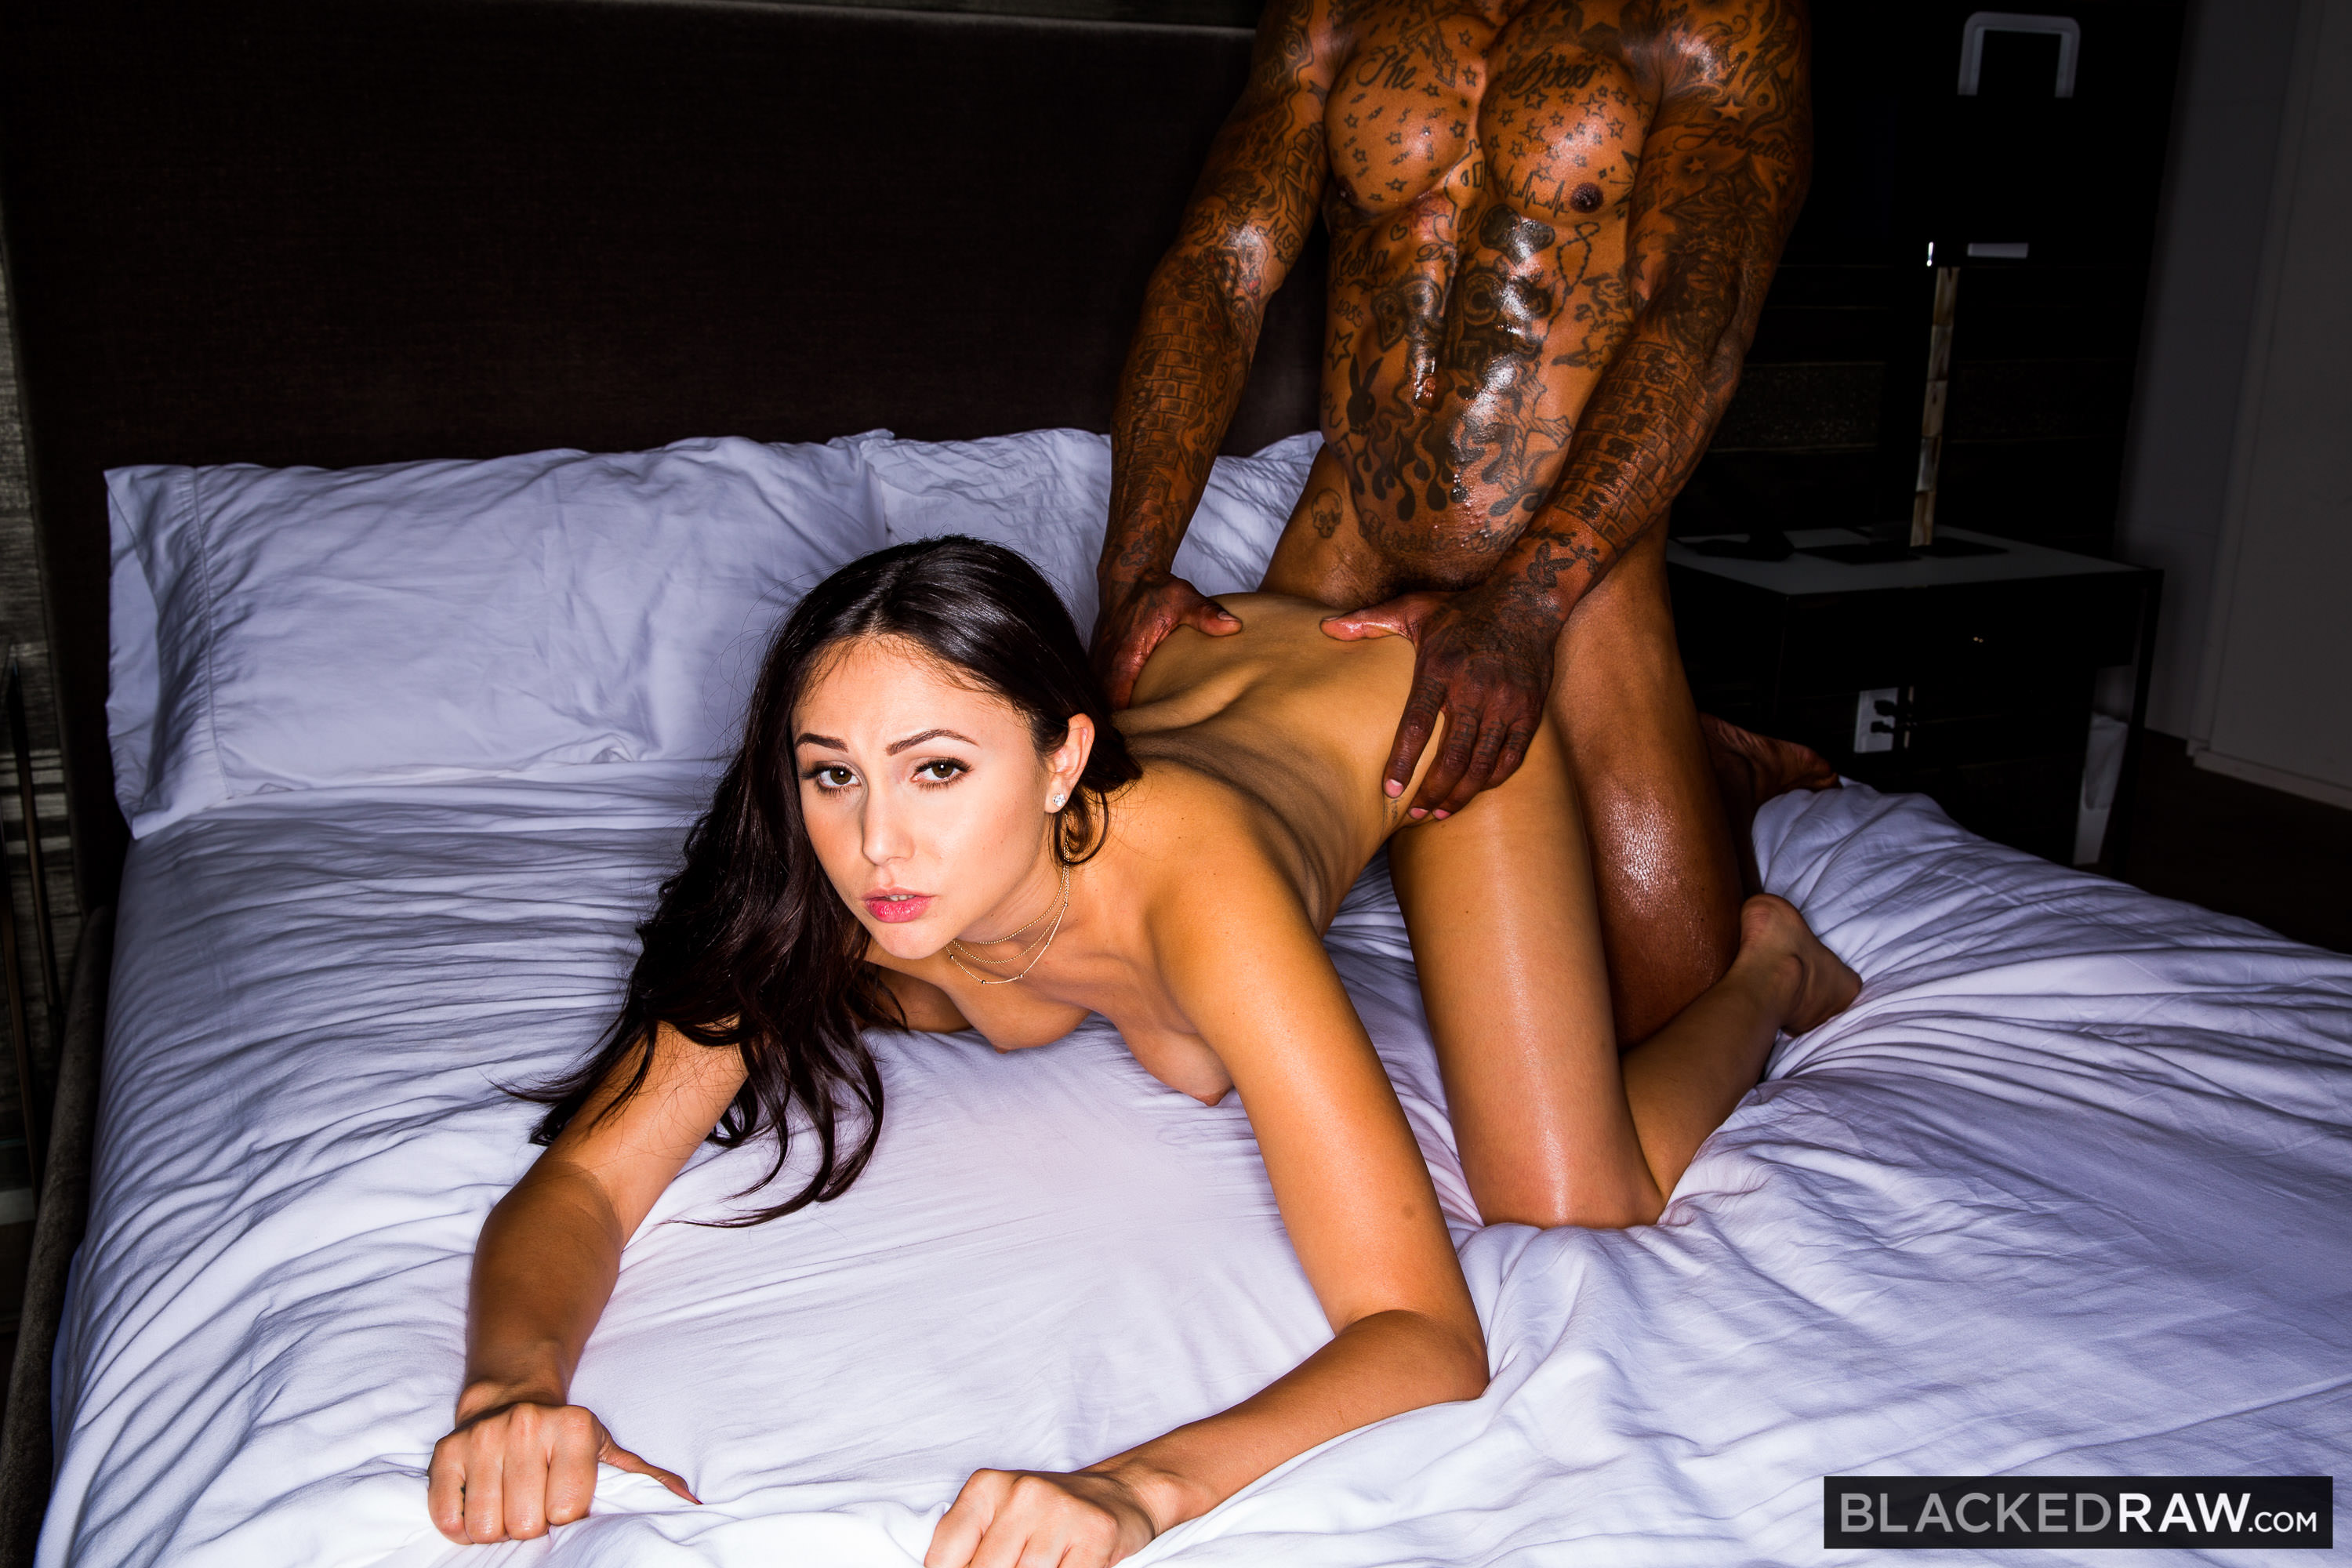 Blackedraw abigail mac takes on biggest bbc in the world - 3 part 1